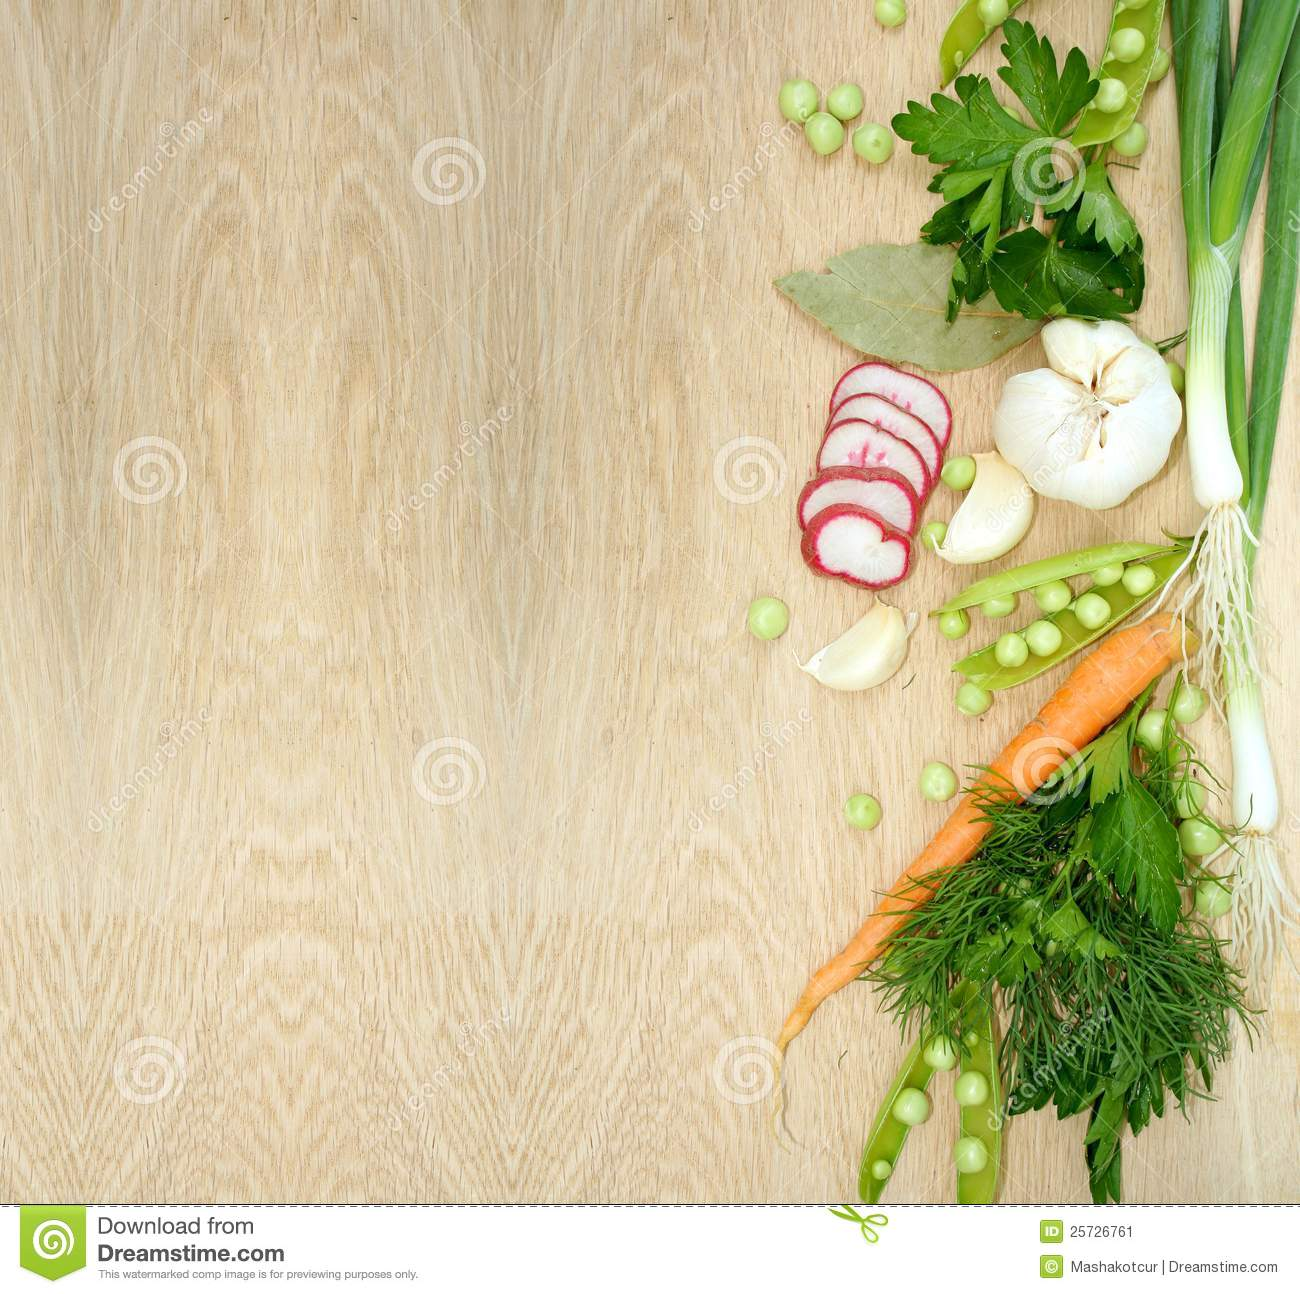 Background With Fresh Vegetables On Wooden Texture Stock